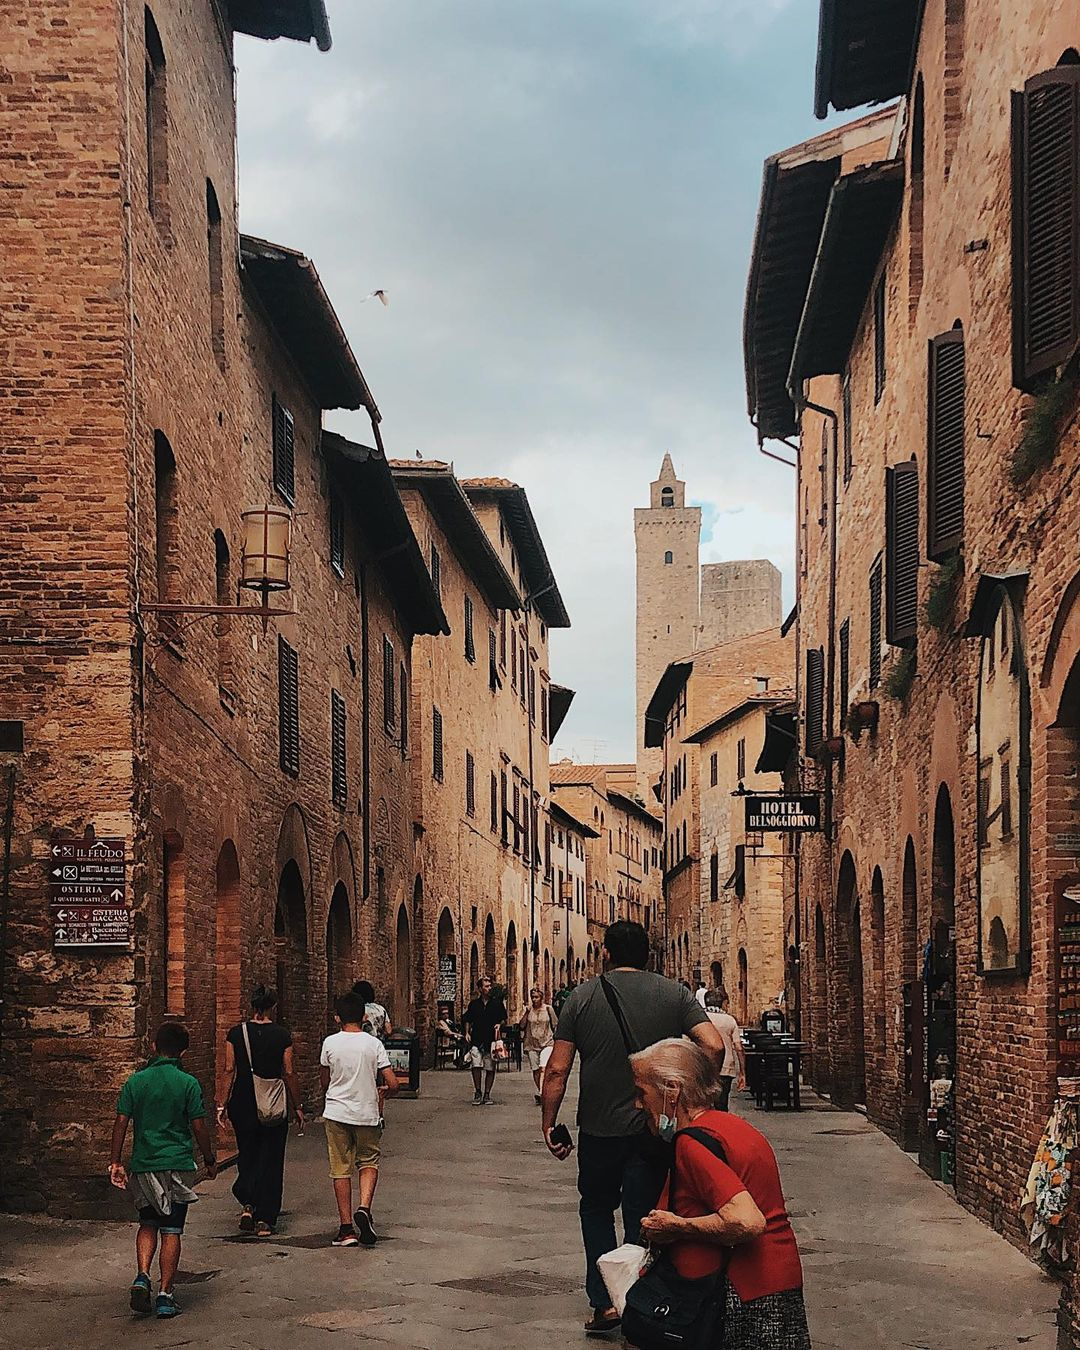 Answers about San Gimignano